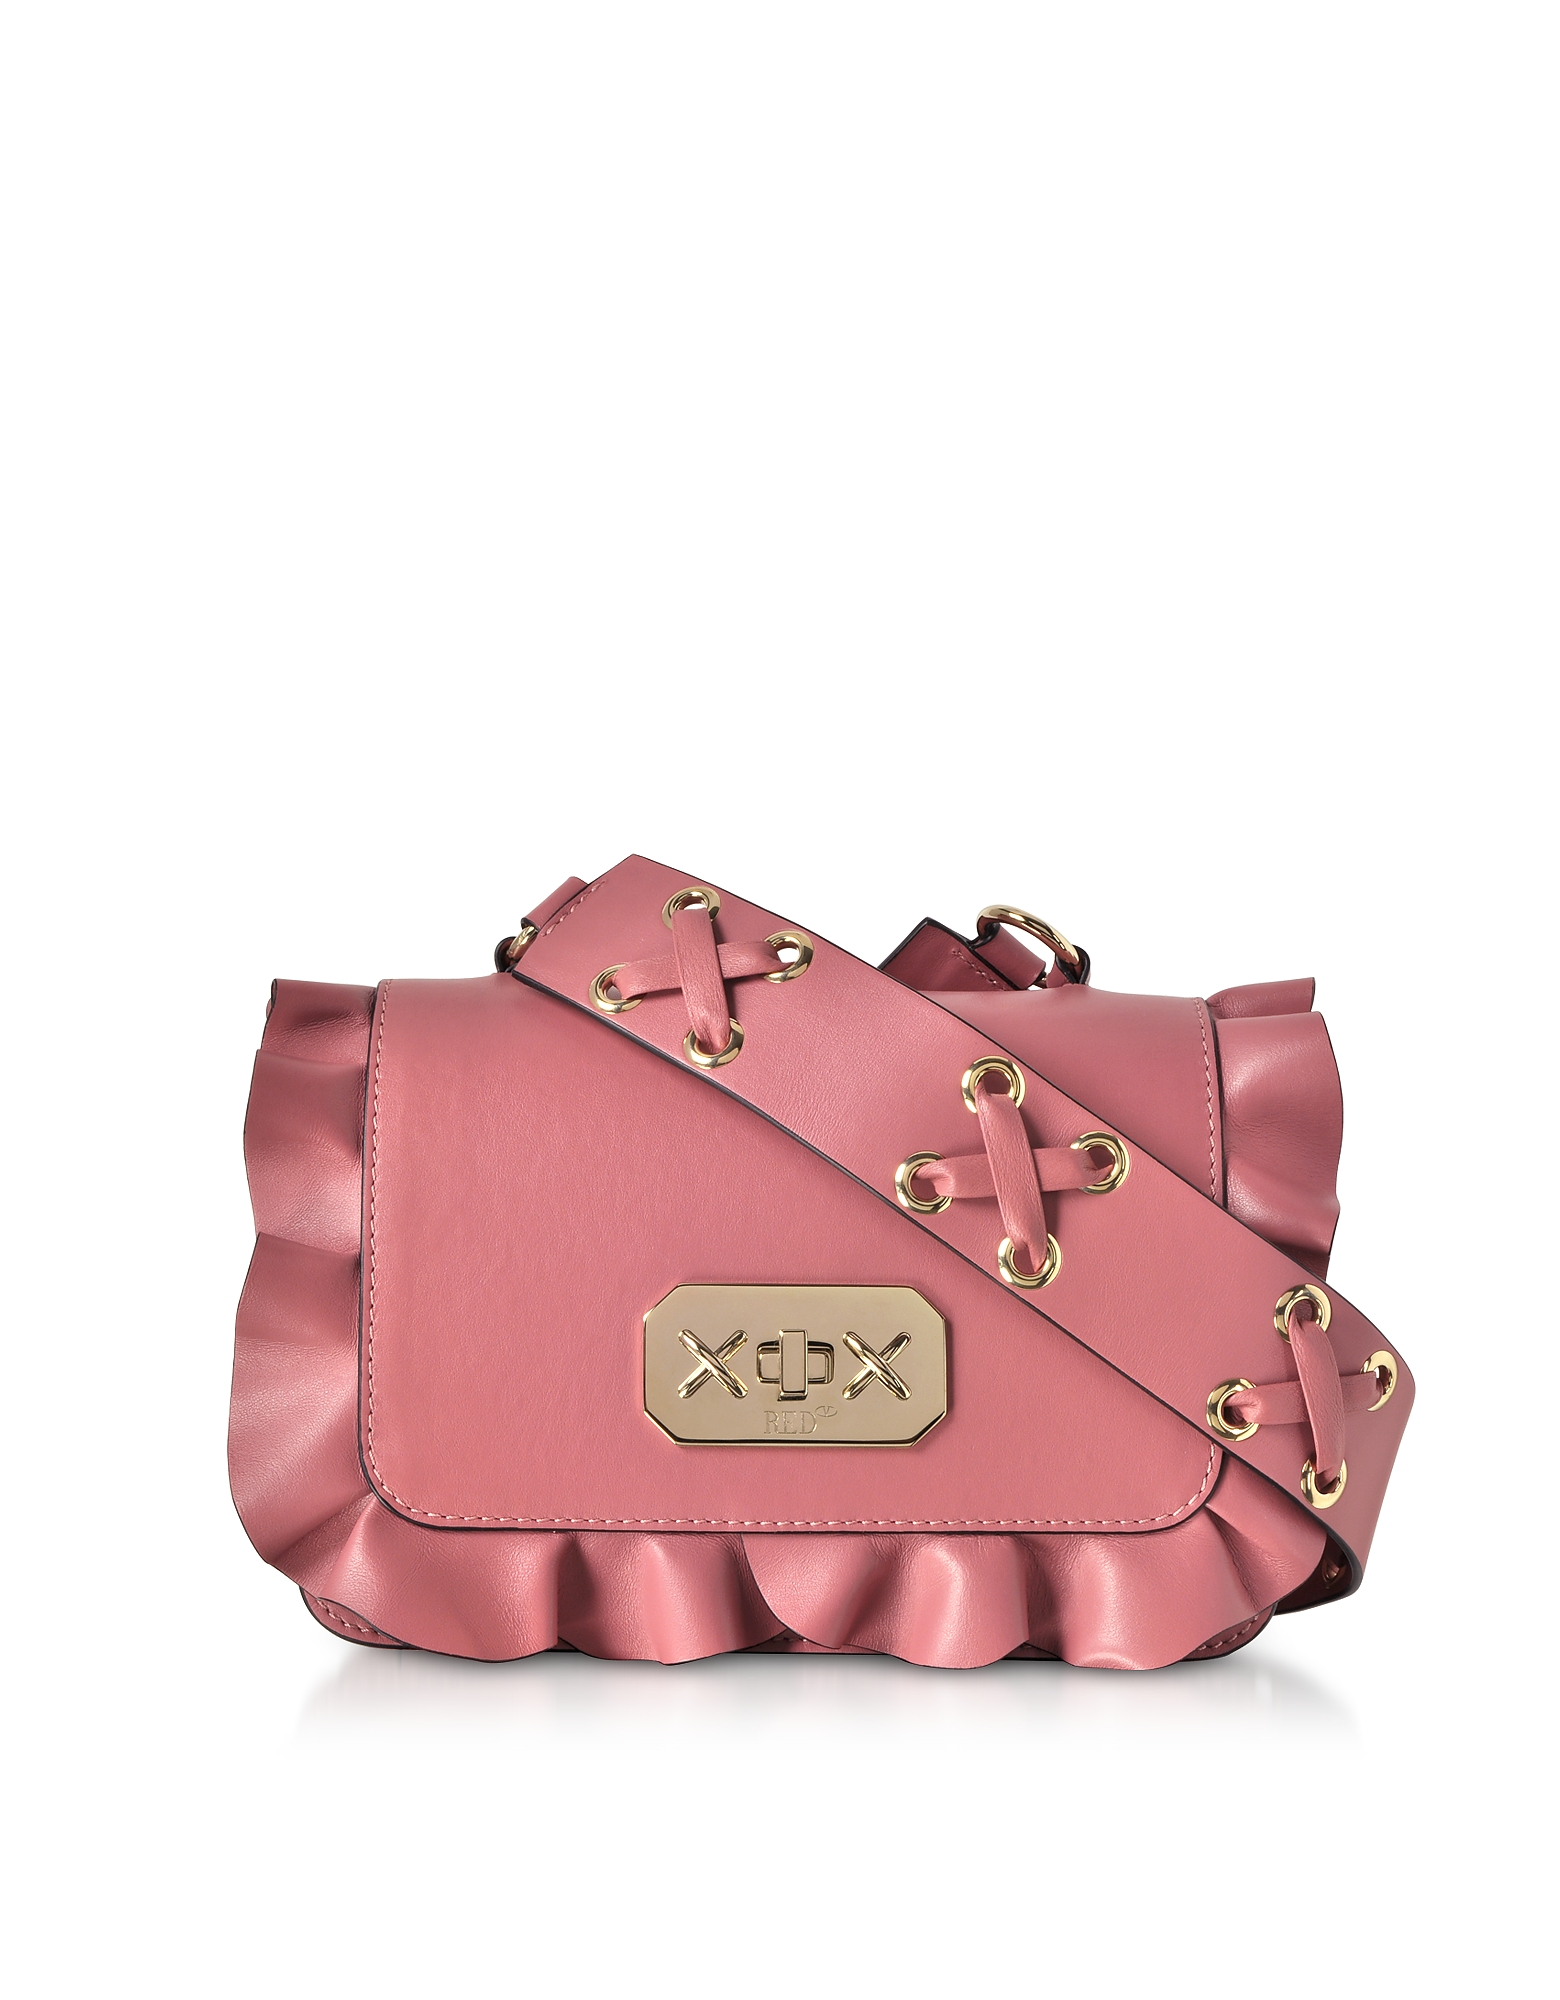 RED Valentino Handbags, Pink Leather Ruffle Small Shoulder Bag